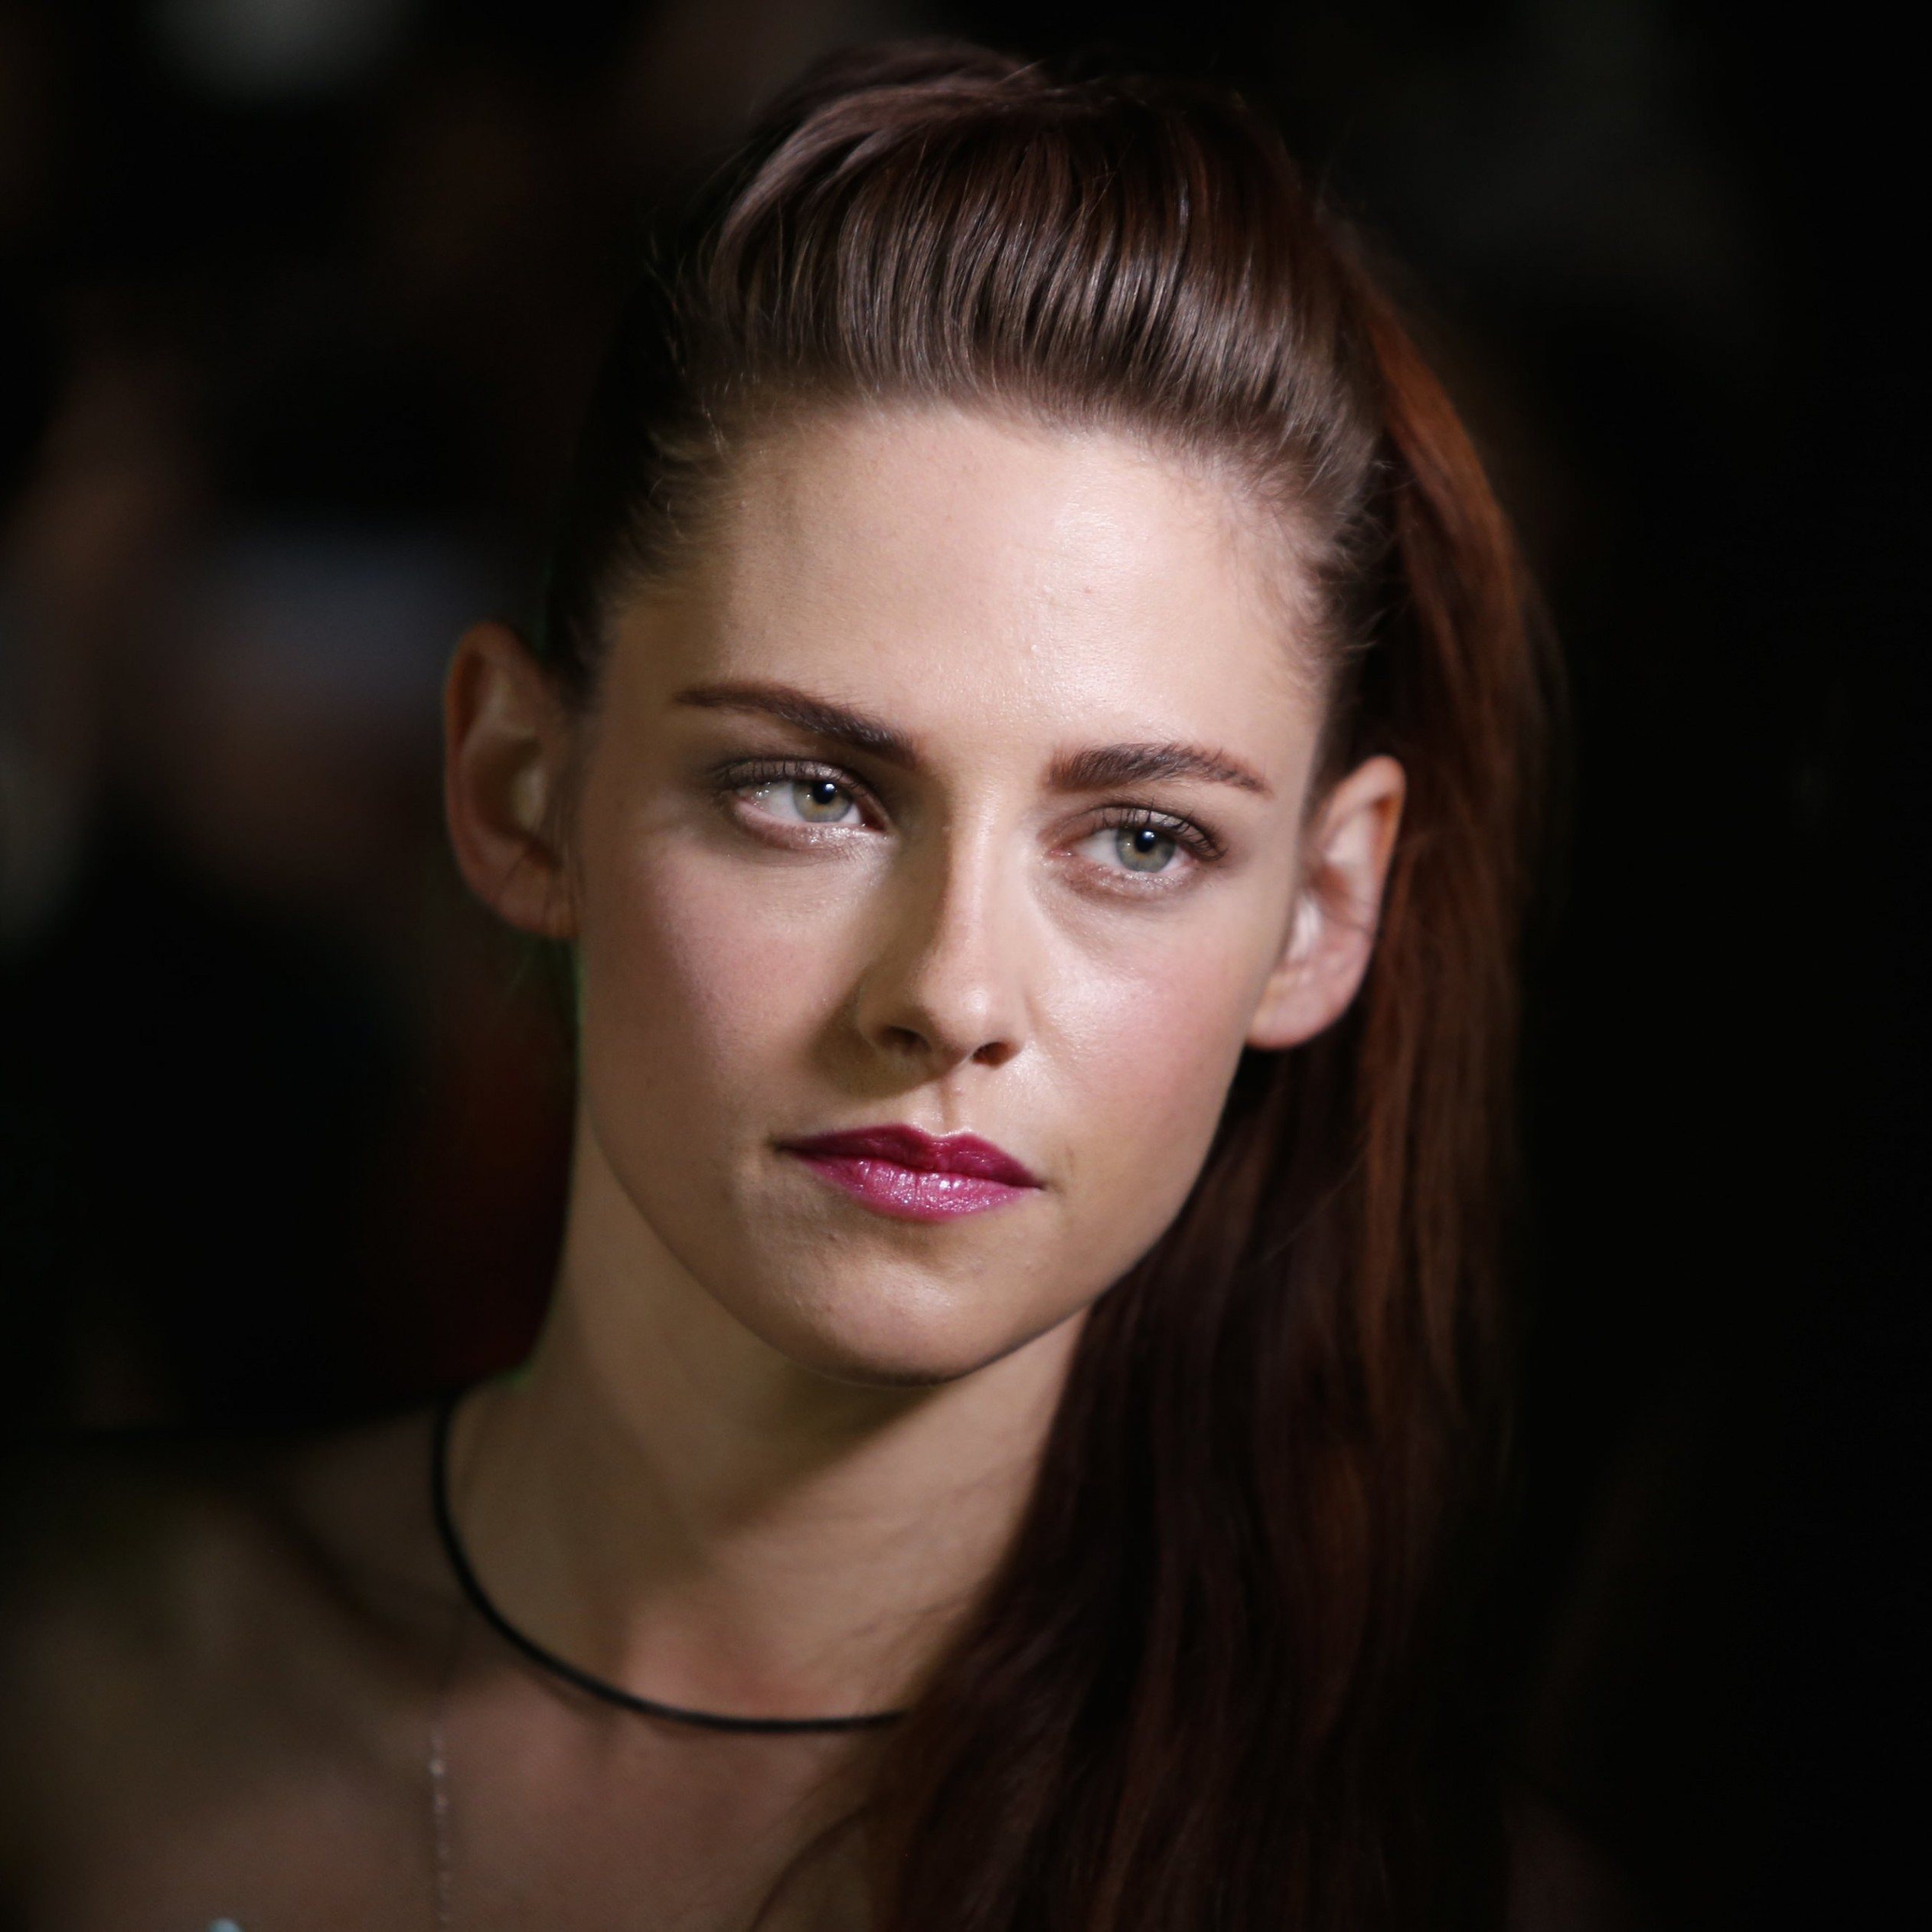 Kristen Stewart Wallpaper for Apple iPad Air